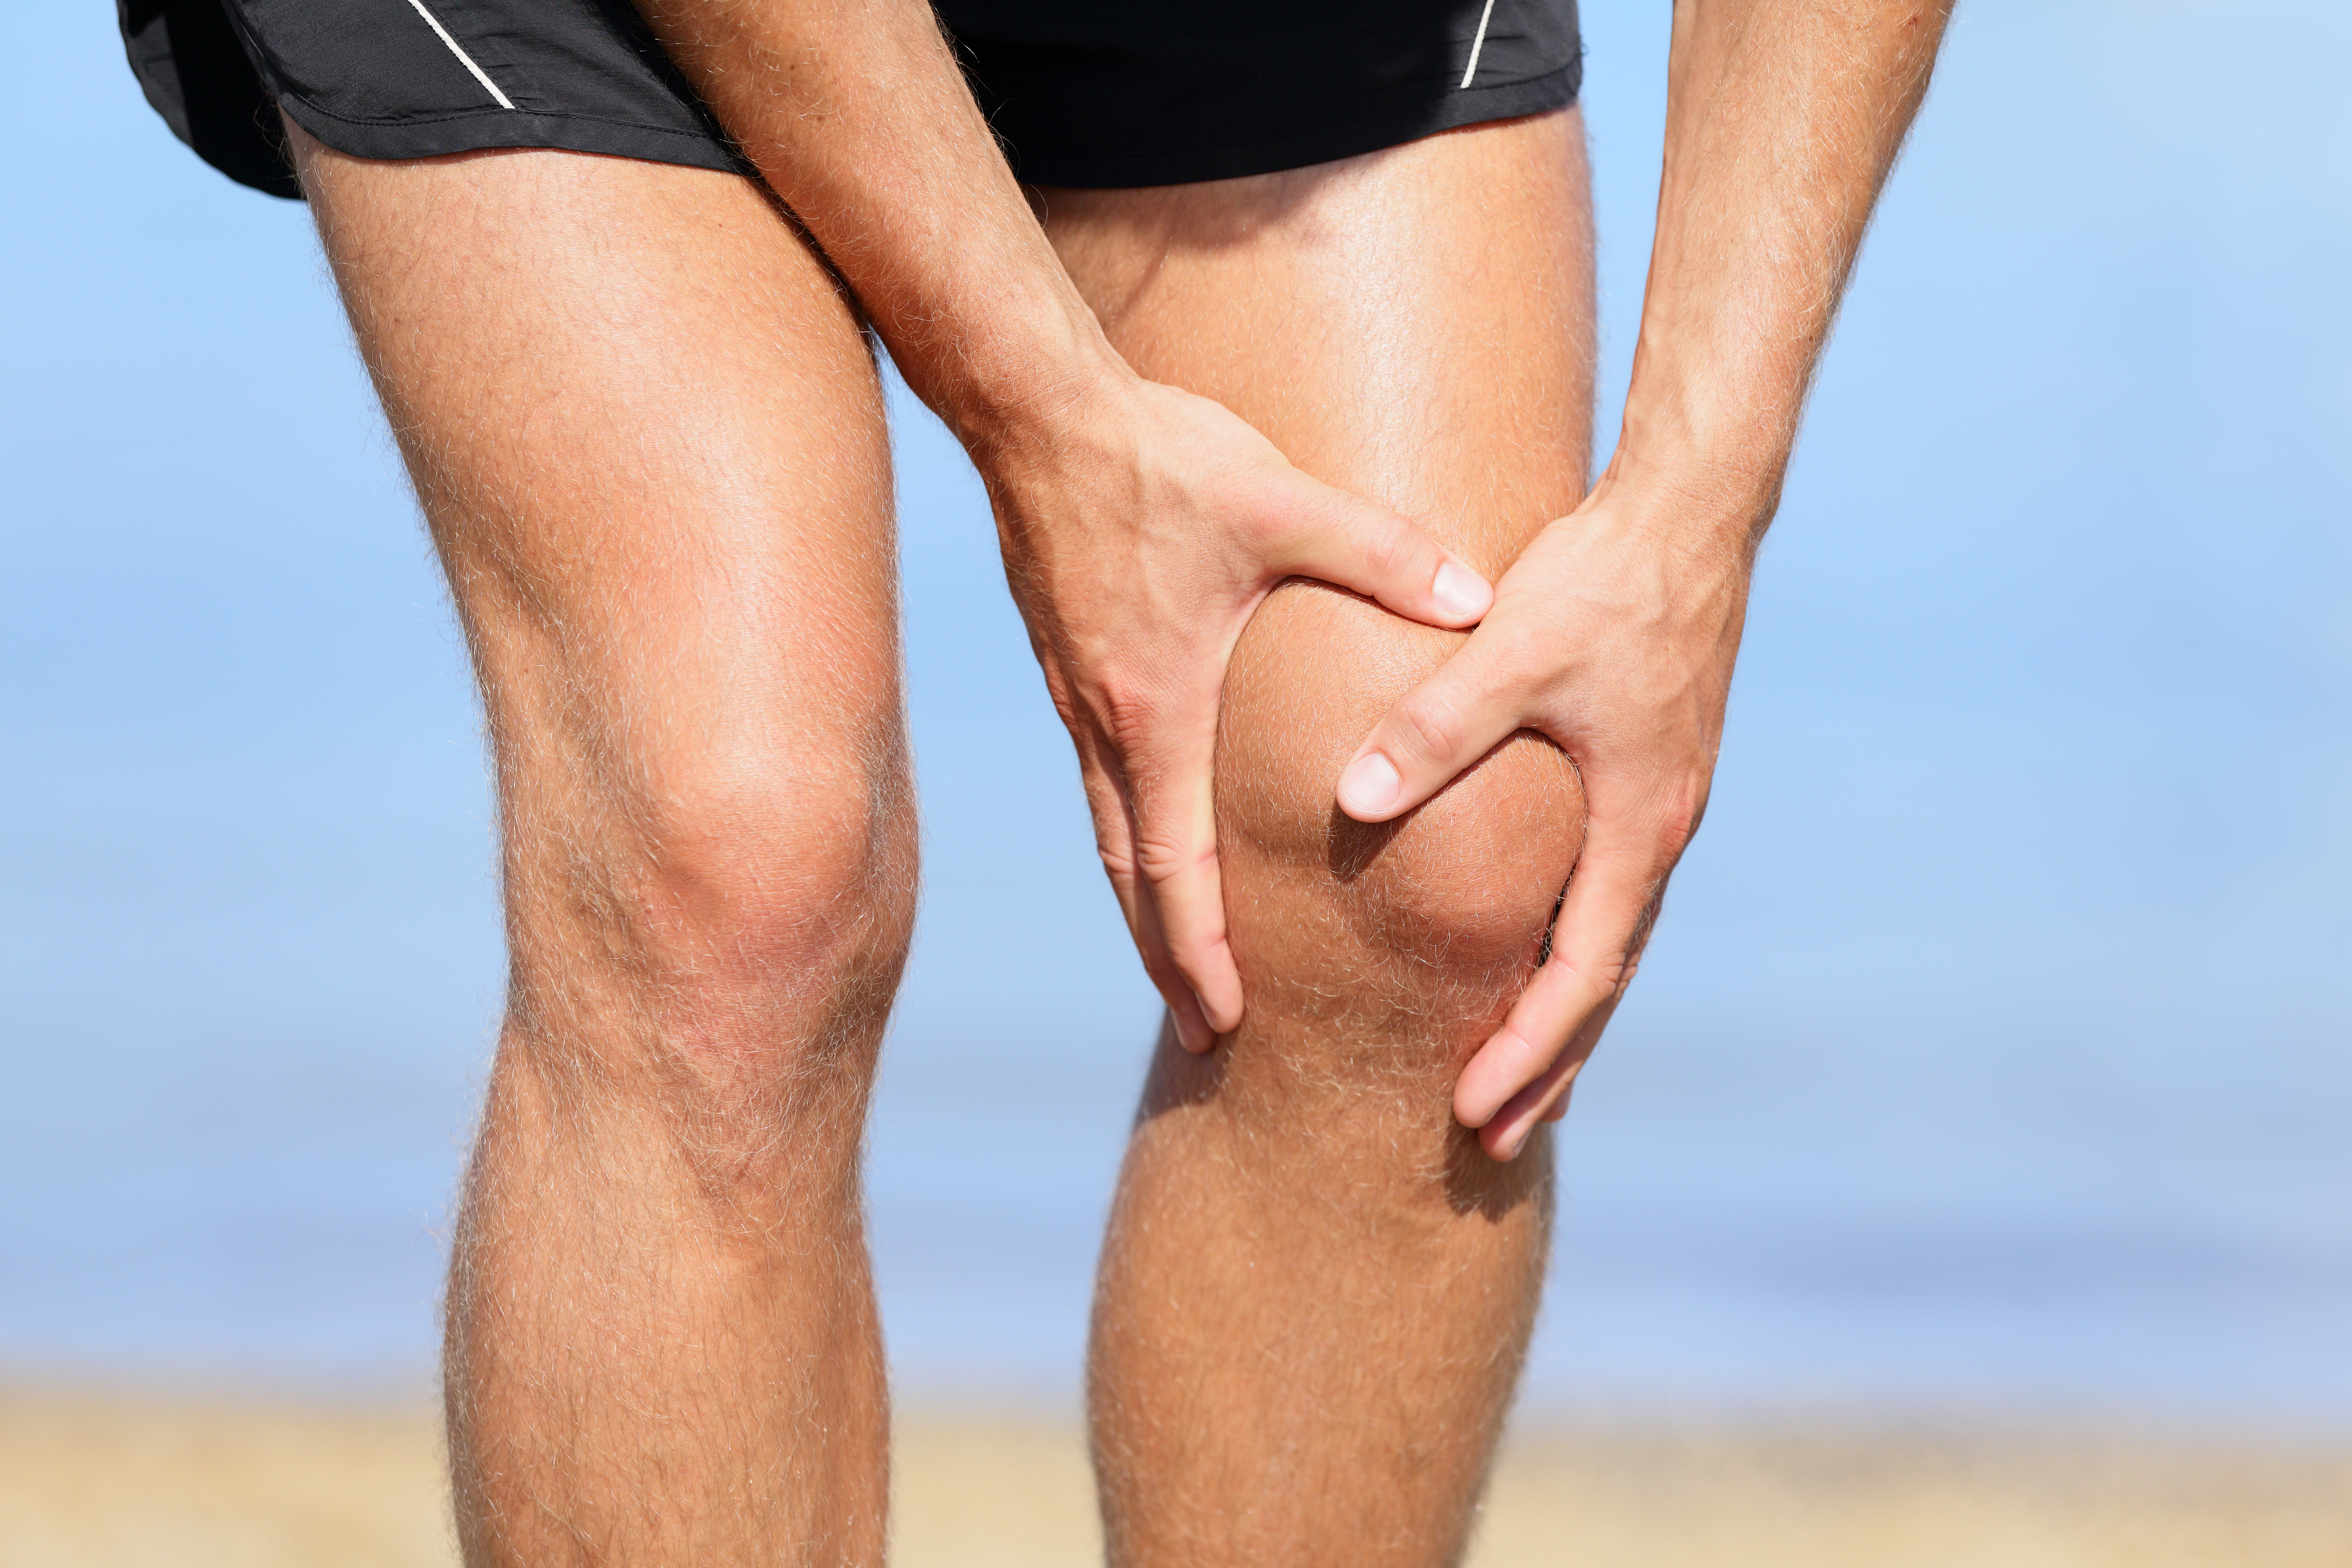 Article about patellar dislocation